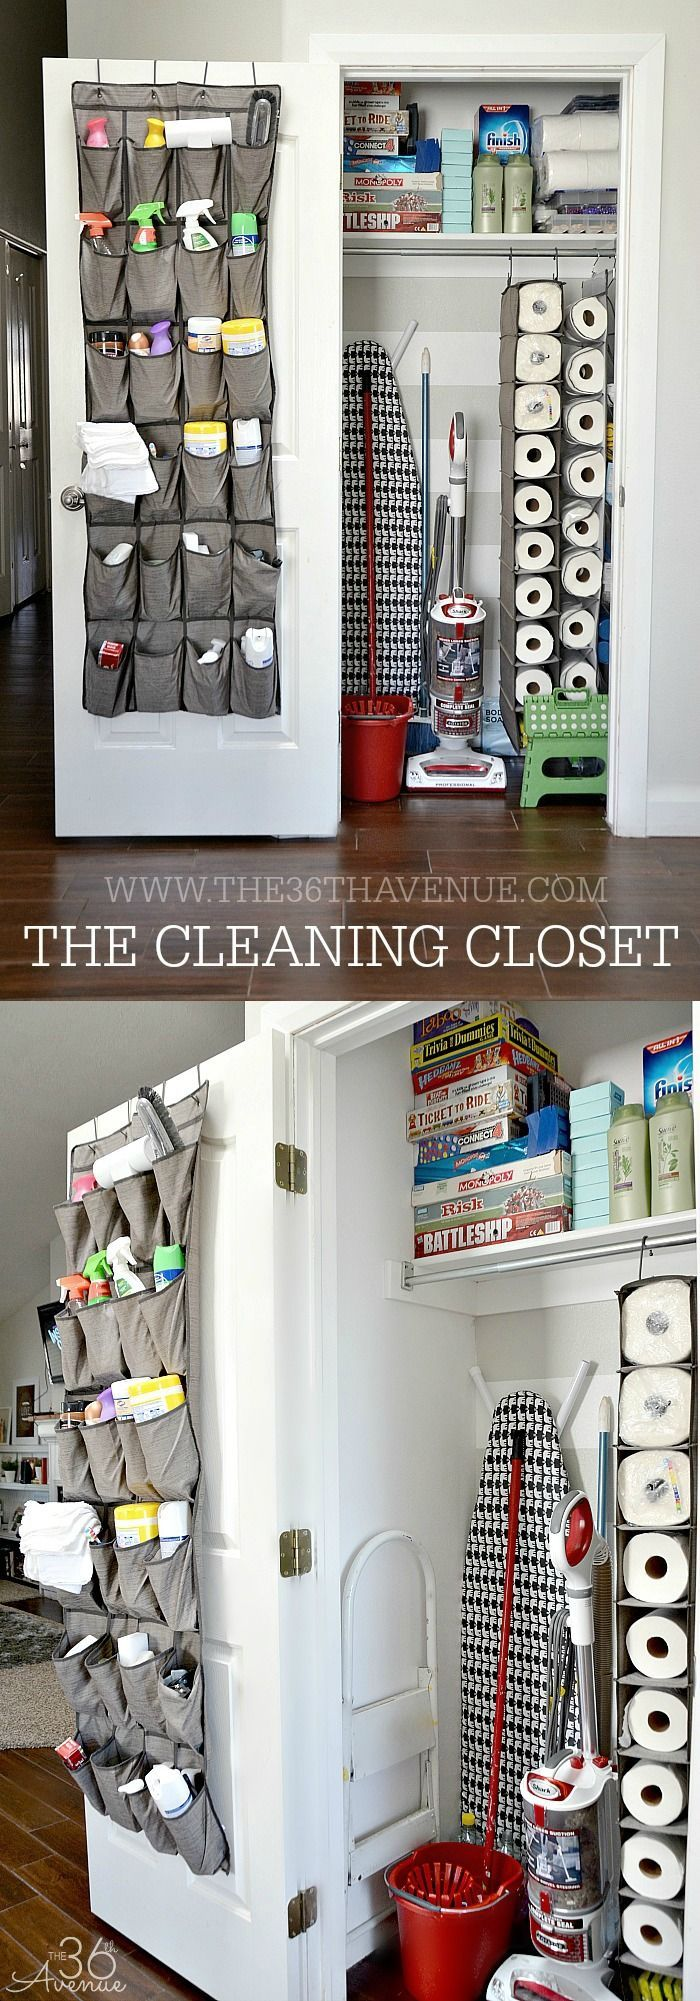 Reinigungstipps Cleaning Tips - Diy Cleaning Closet | Best Of Pinterest | Pinterest | Cleaning Closet, Cleaning … | Cleaning Closet Organization, Home Organization, Cleaning Closet